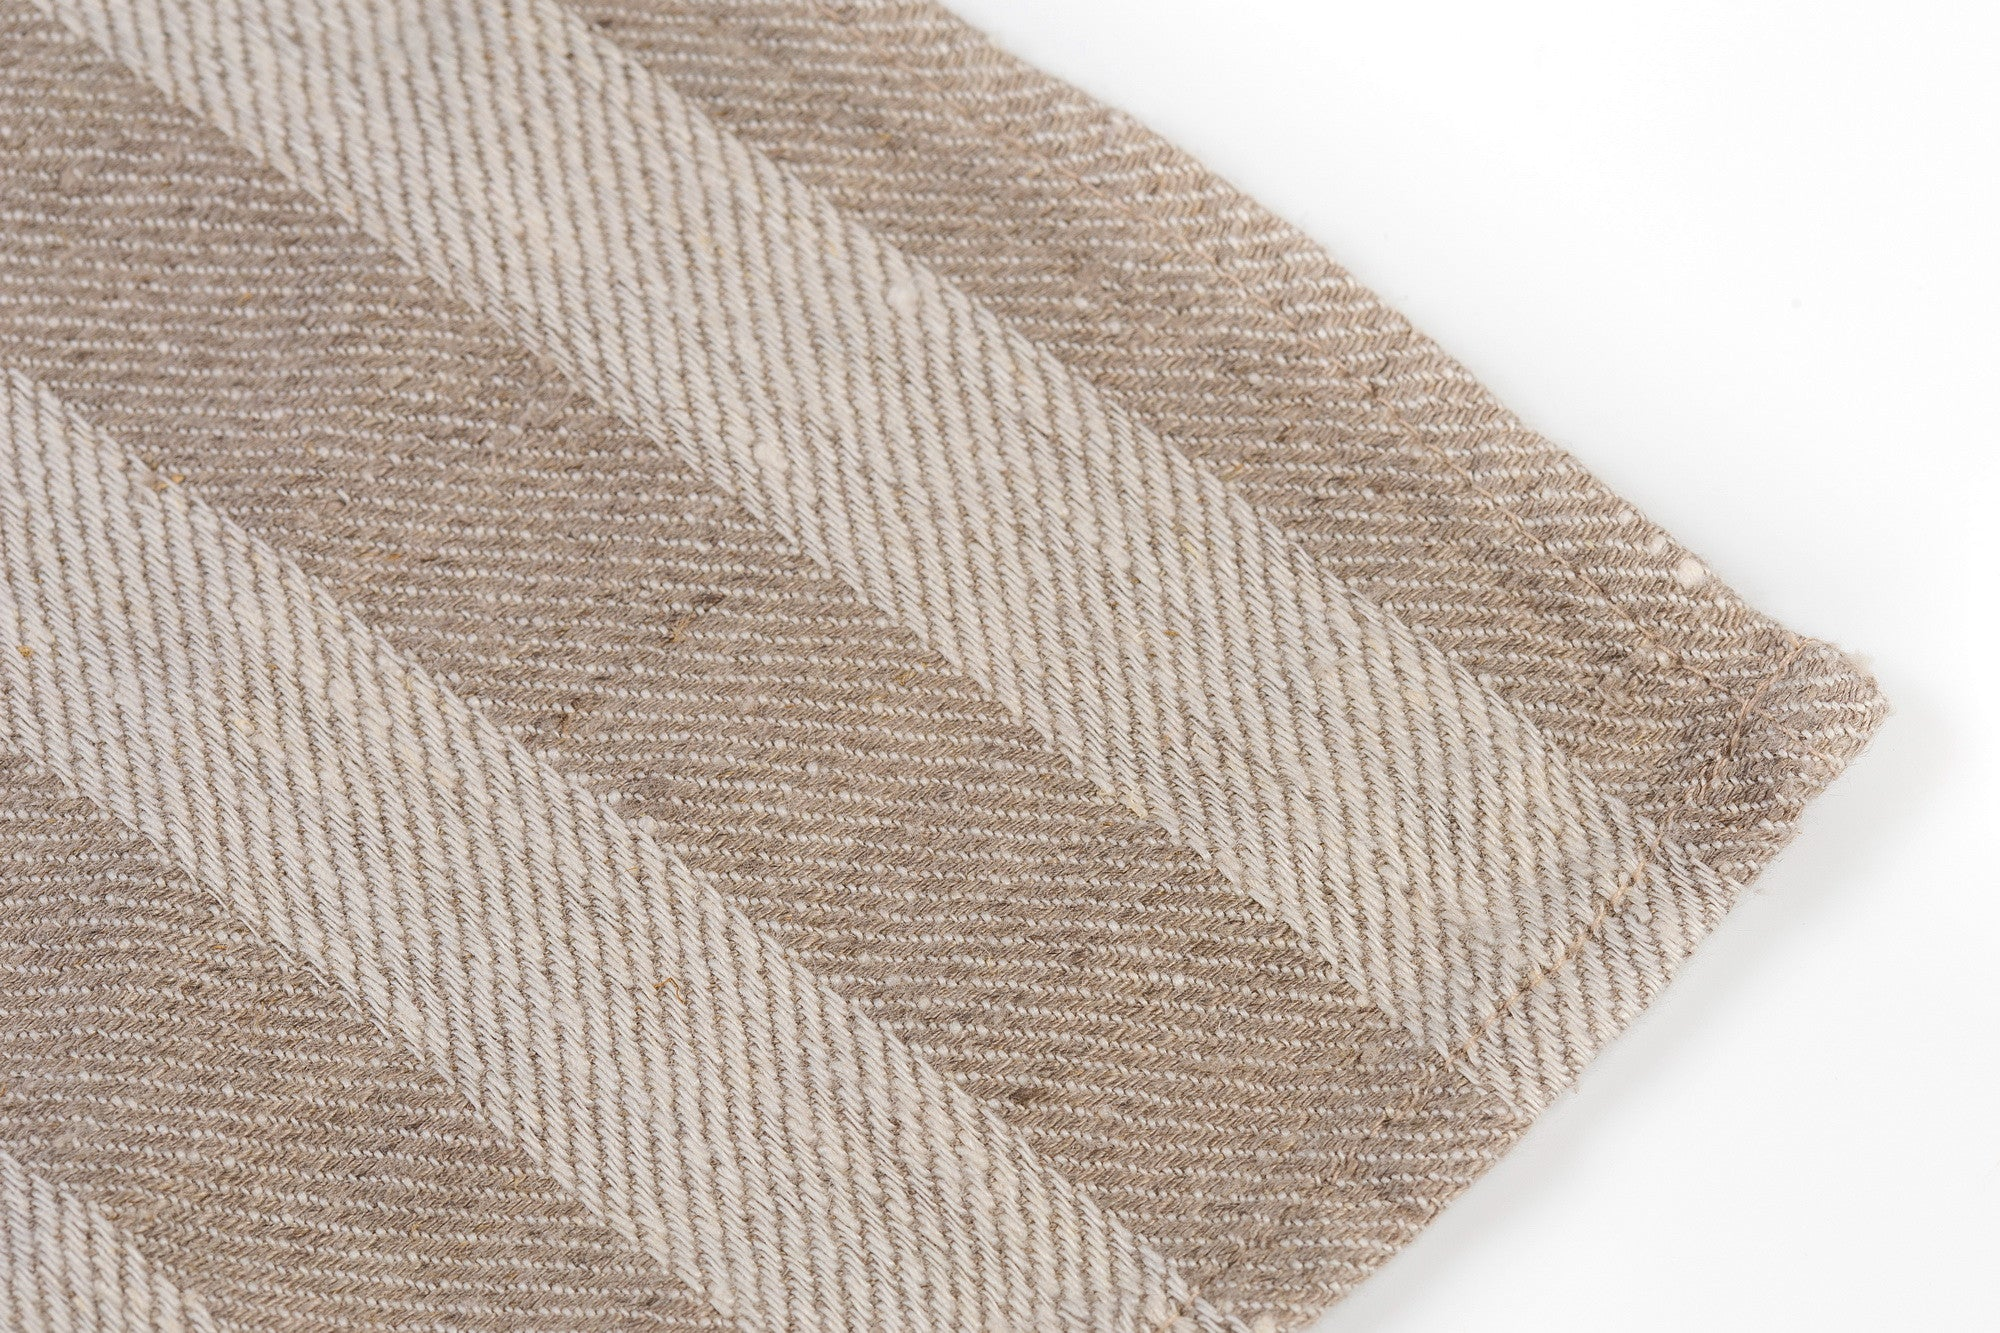 BLESS LINEN Jacquard Striped Pure Linen Flax Bath Towel, Grey/White - BLESS LINEN pure linen towels and blankets - 2